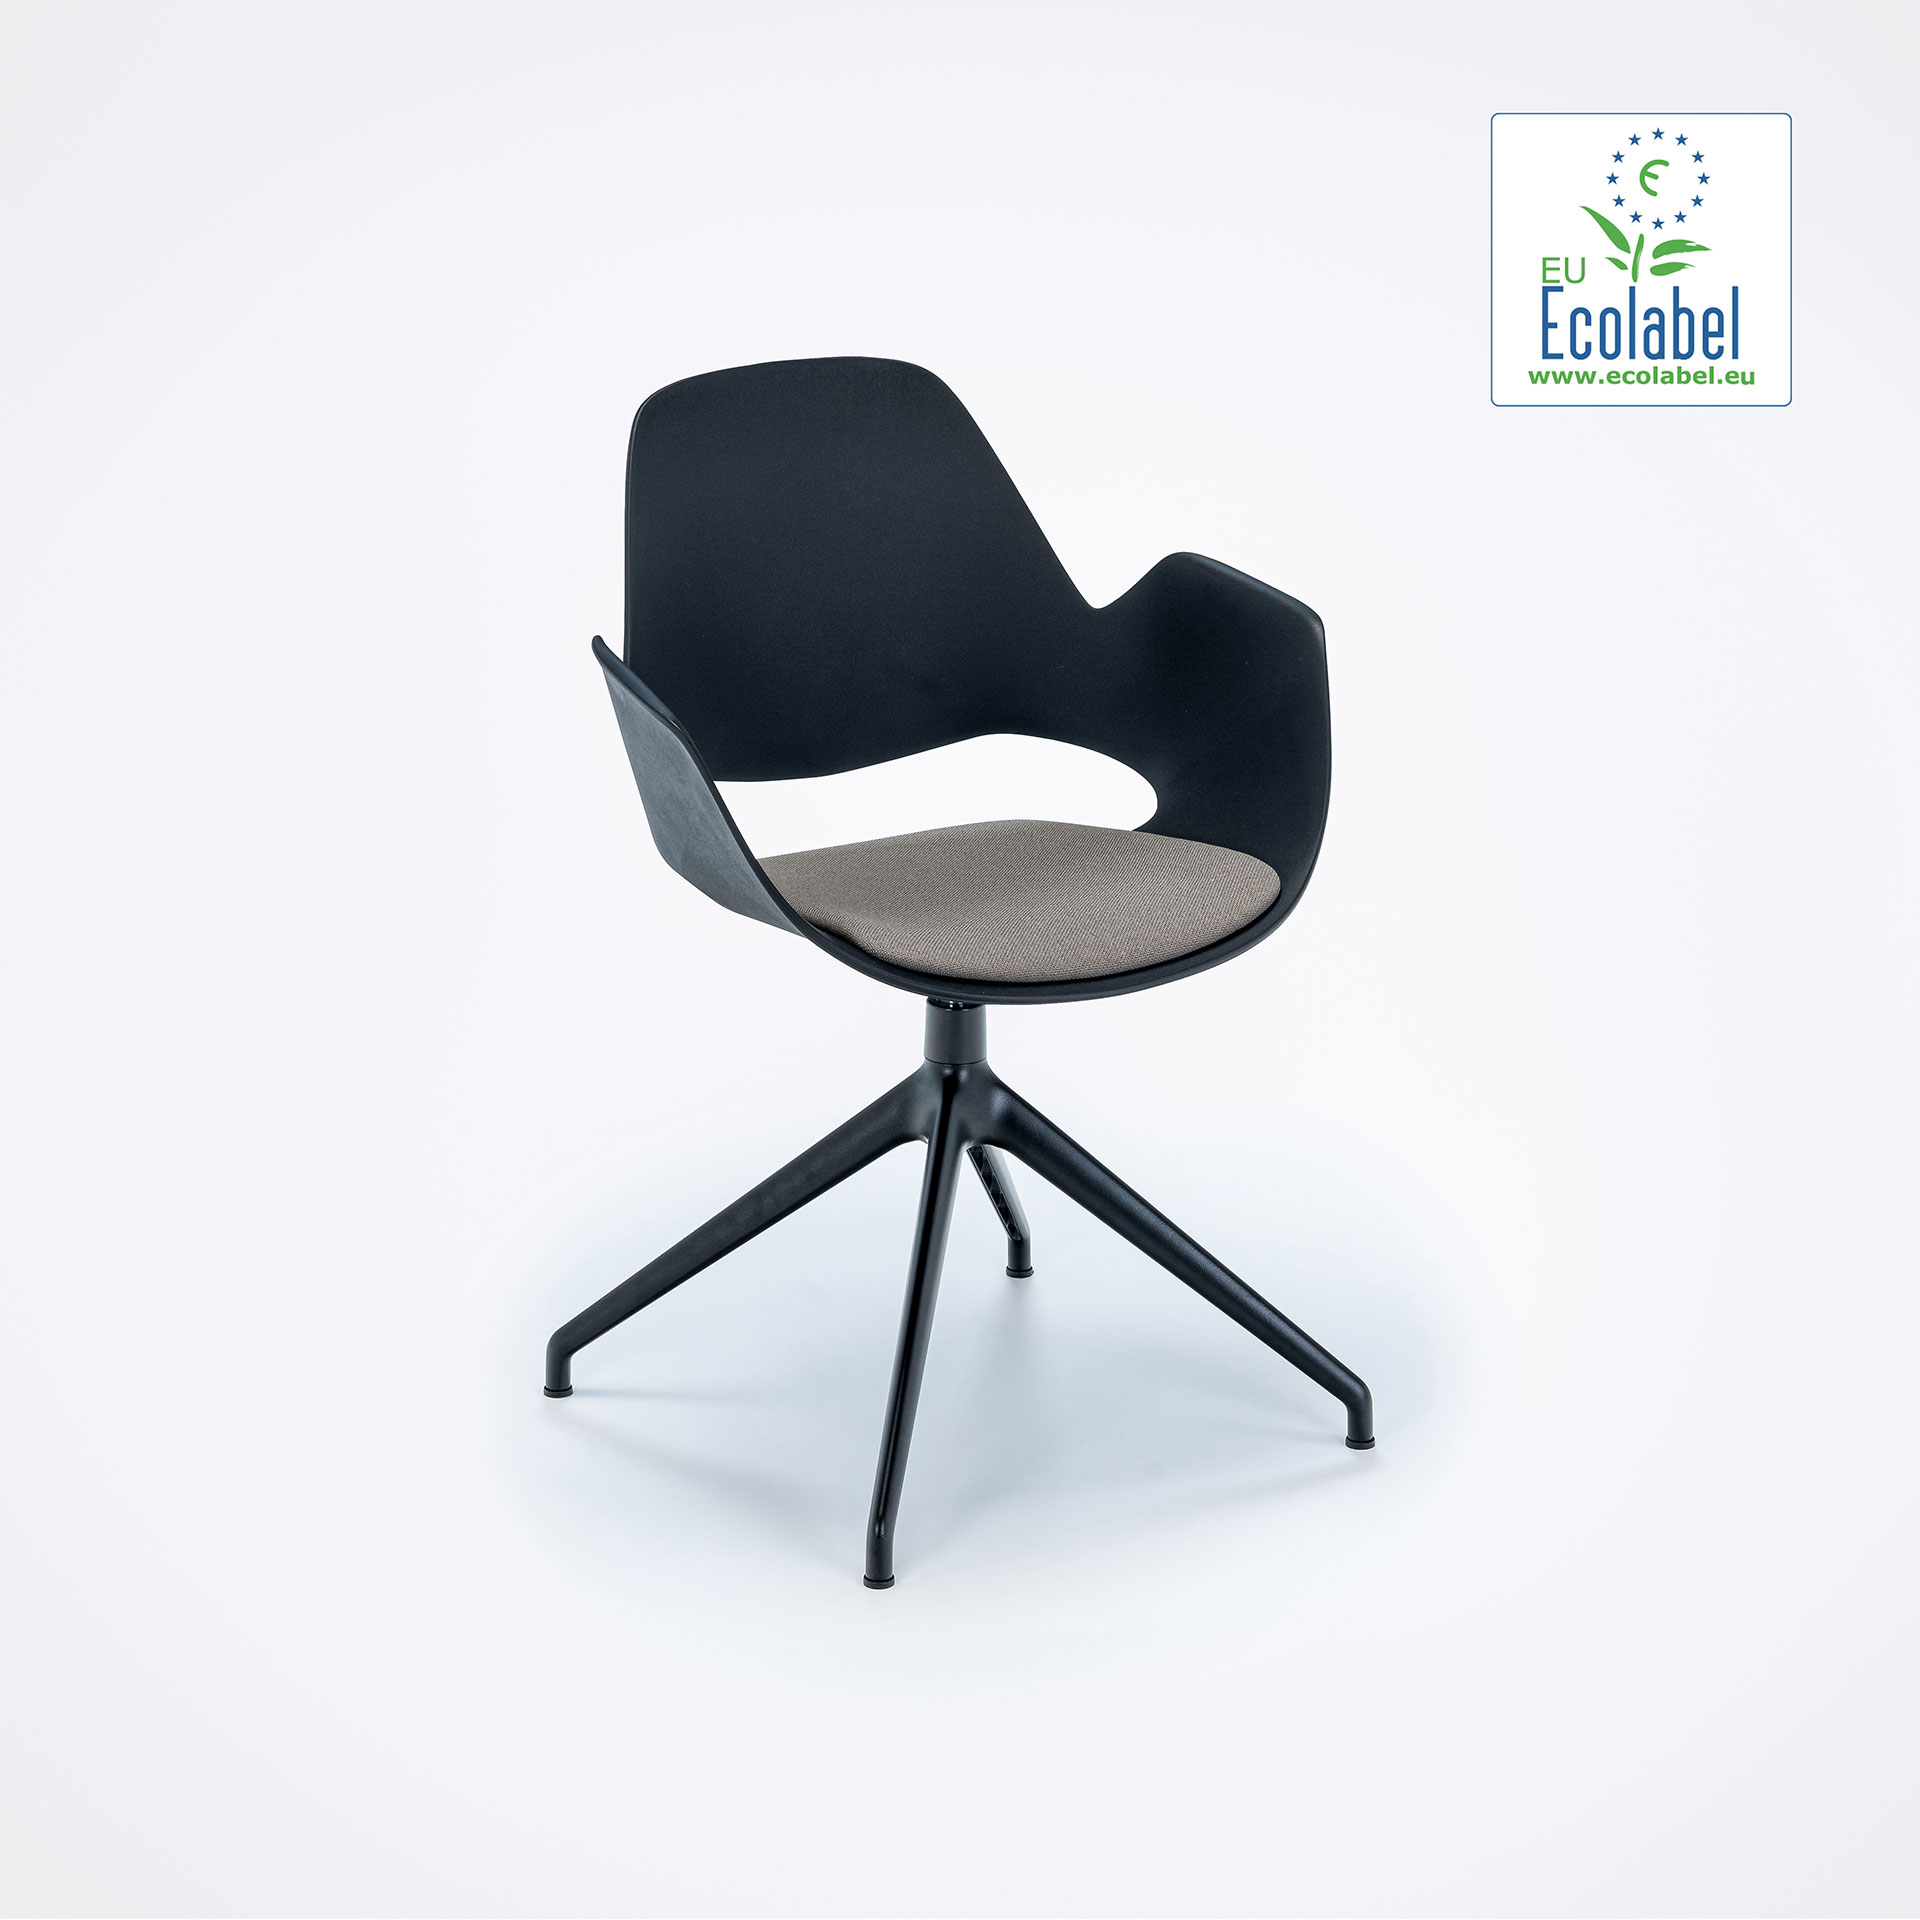 DINING ARMCHAIR // PADDED SEAT // Beige // 4 star swivel base